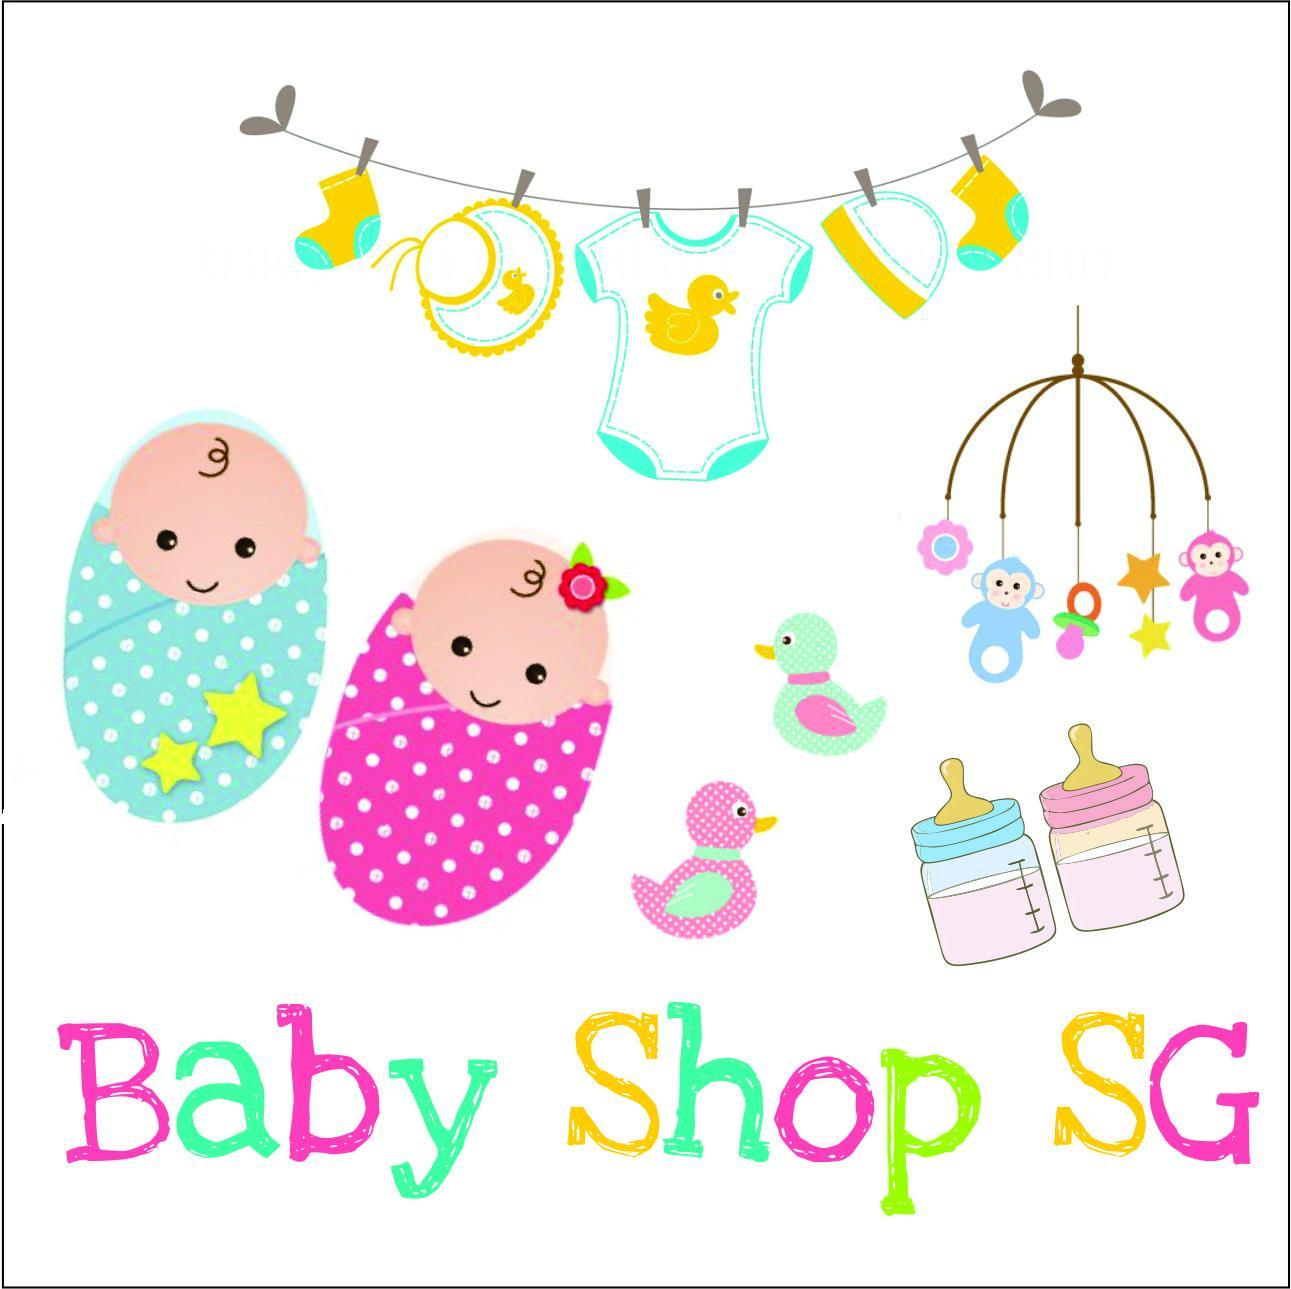 Let your baby show some style with the latest trends in baby clothing in Singapore